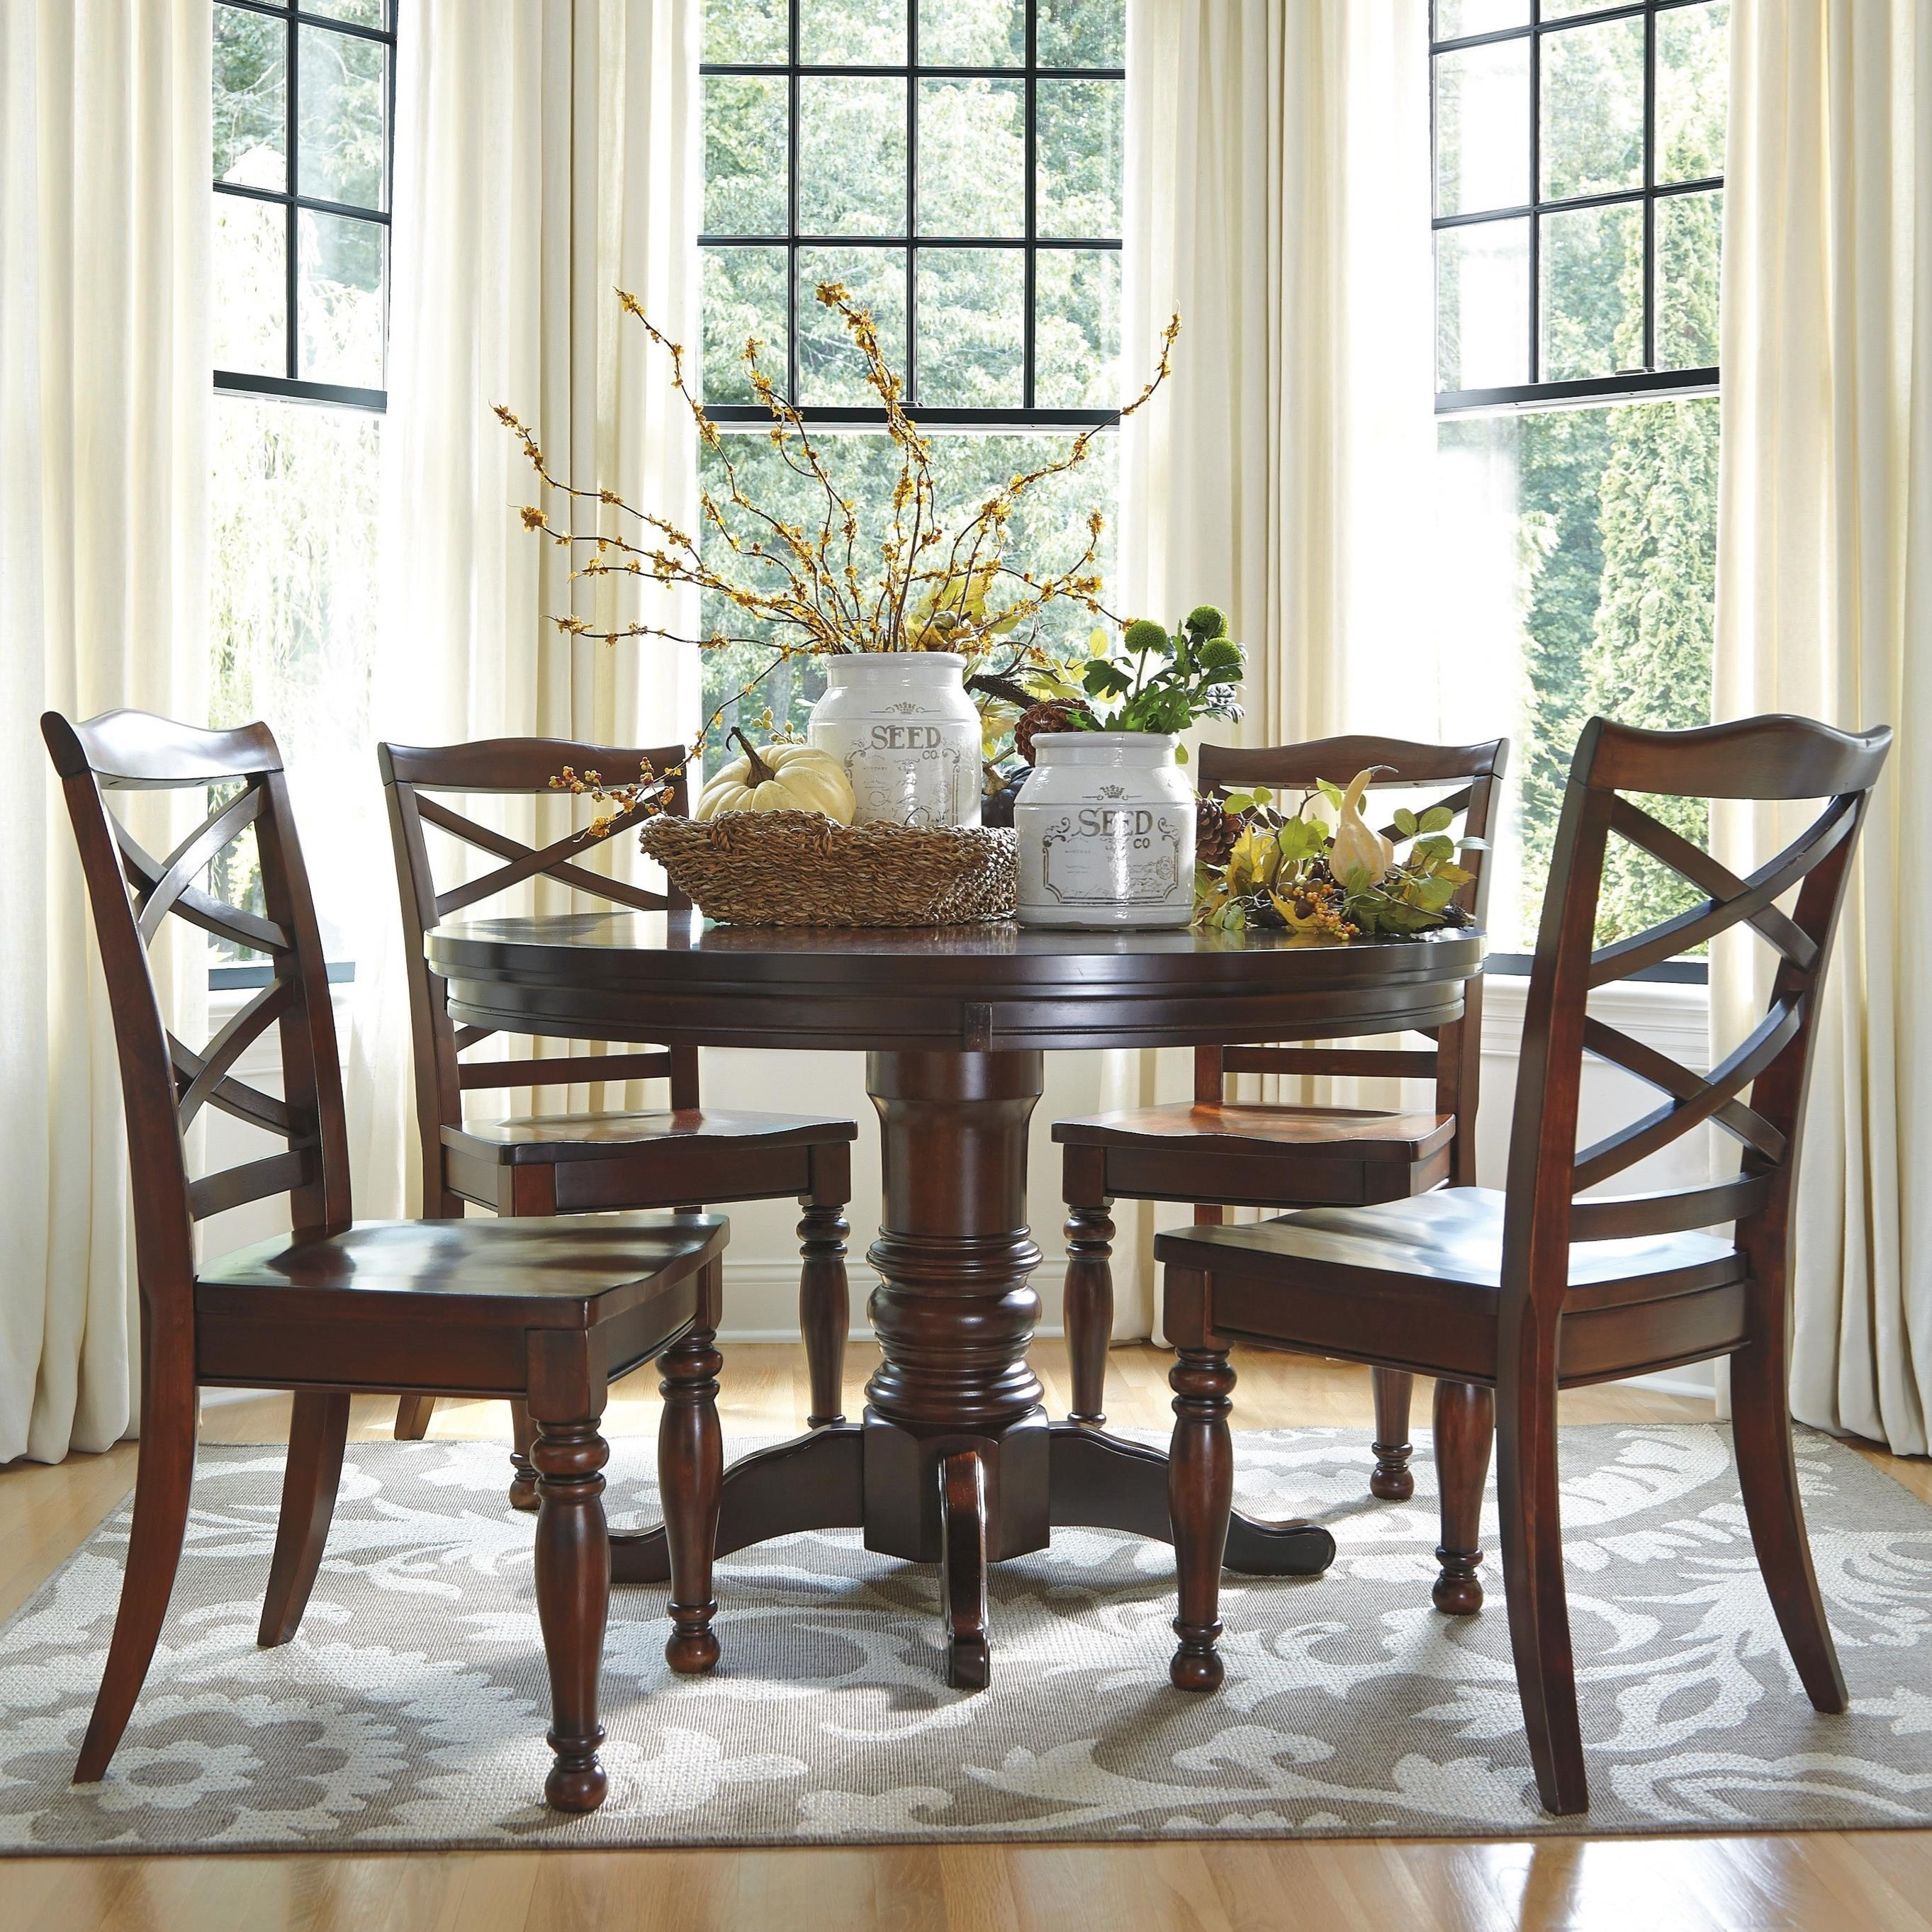 Round Dining Table With Extensions Porter 5 Piece Round Dining Table Set By Ashley Furniture At L Fish